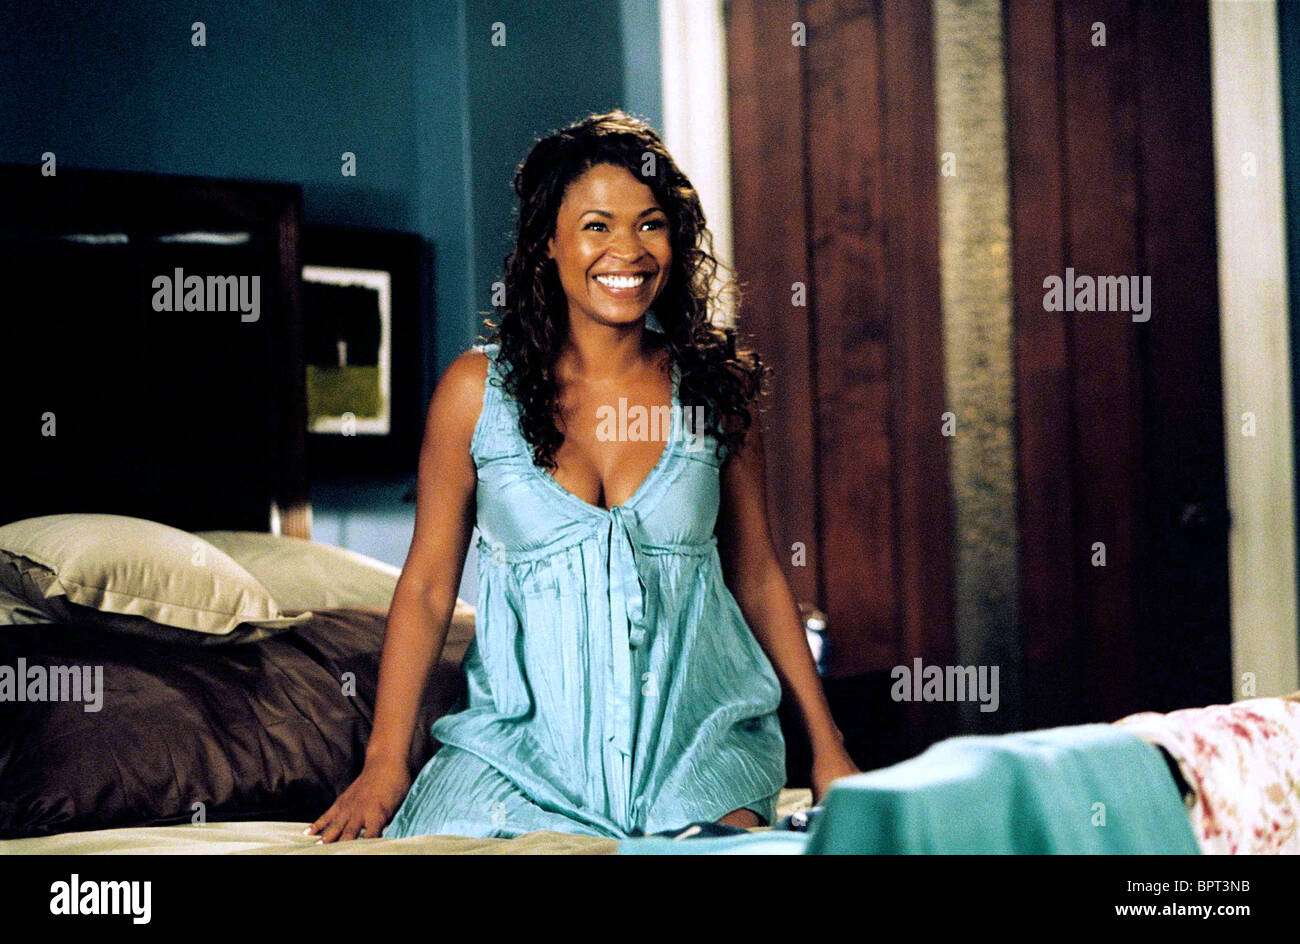 NIA LONG ARE WE DONE YET? (2007) - Stock Image